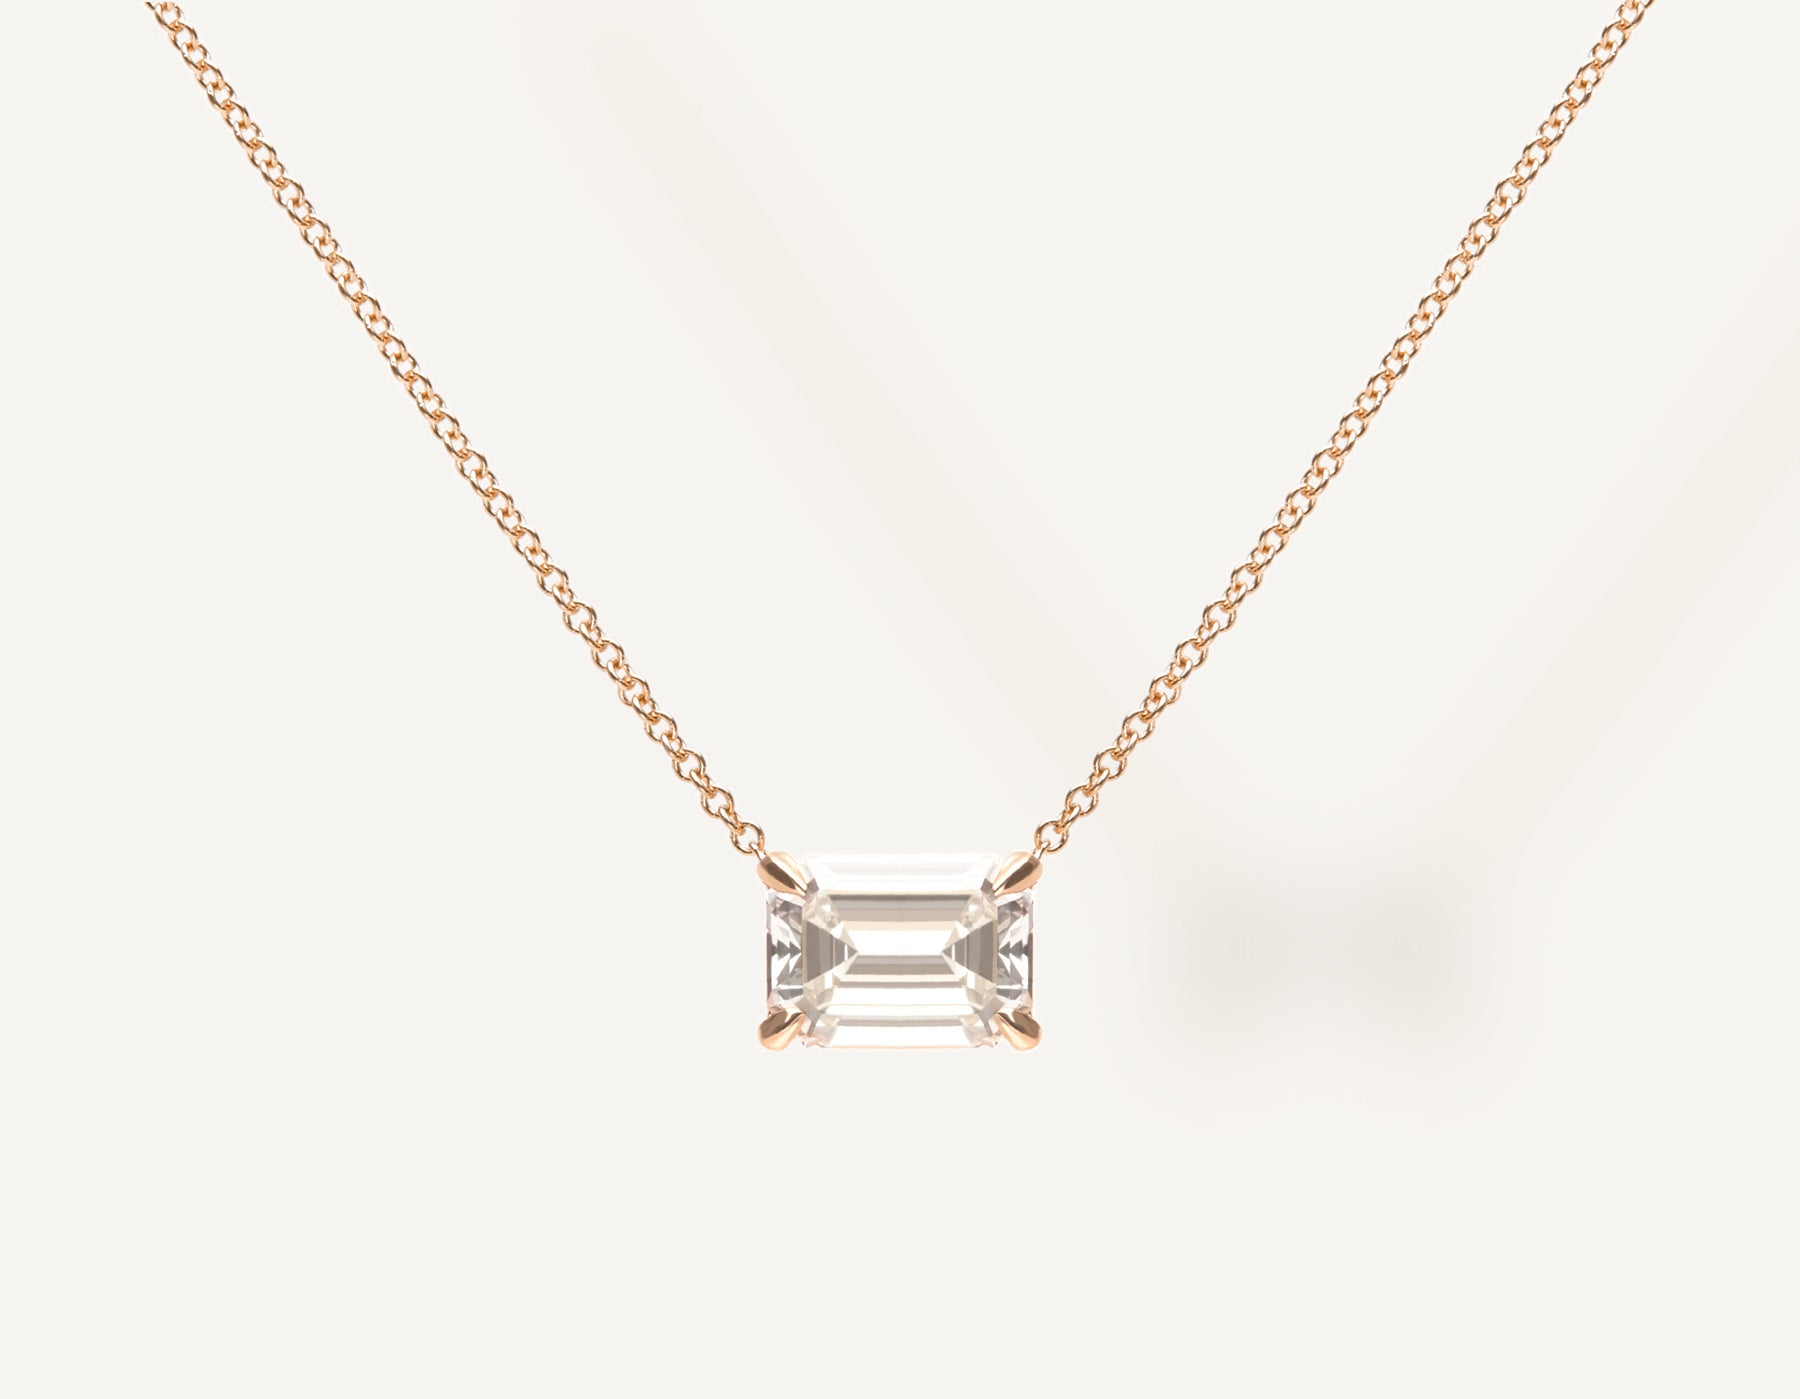 Simple modern 18k solid gold 1.0 ct Emerald Diamond Necklace on thin chain with lobster clasp Vrai and Oro, 18K Rose Gold